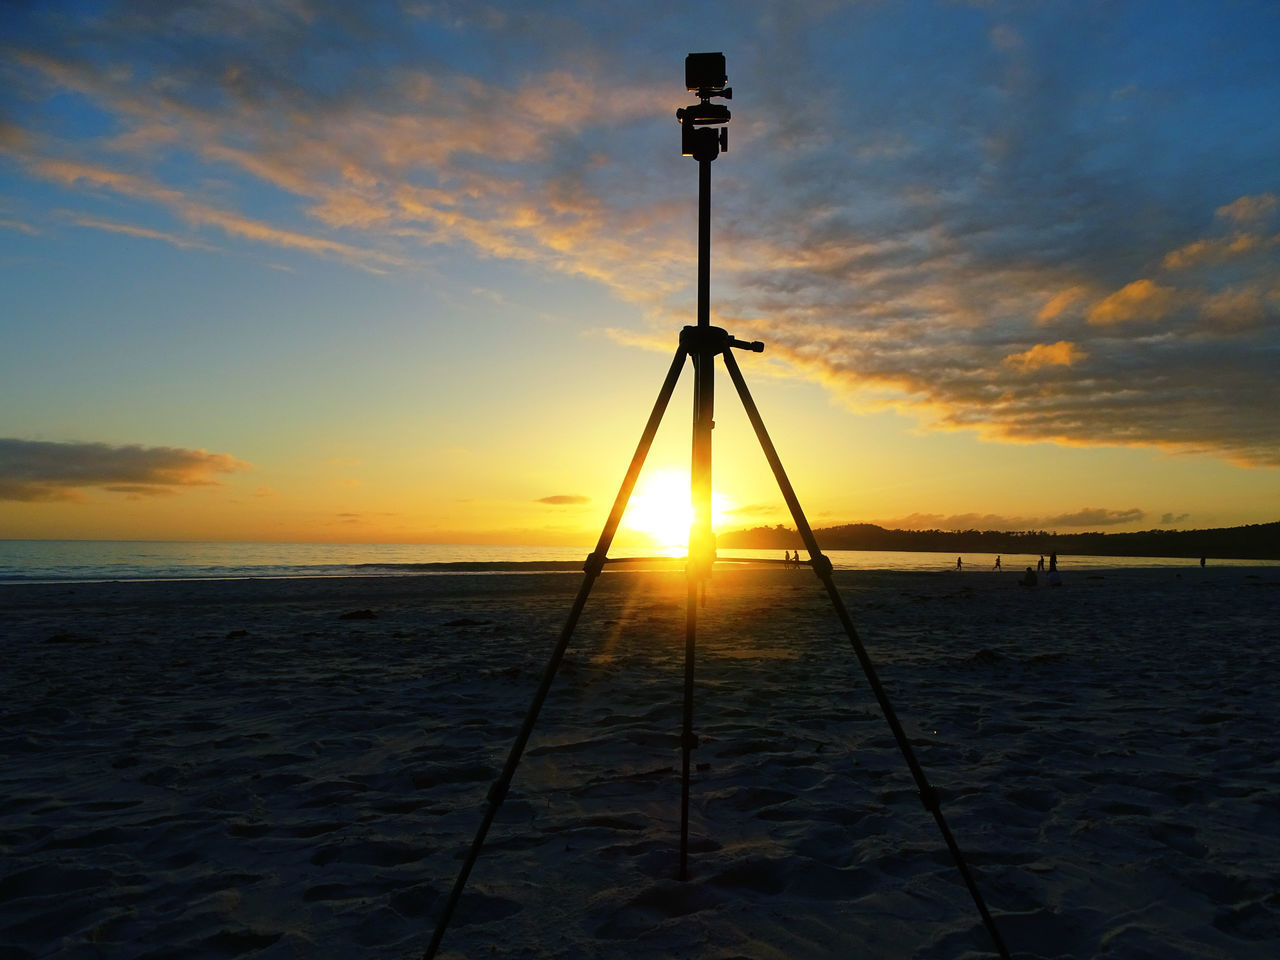 sunset, sea, sky, cloud - sky, tranquility, silhouette, water, beach, tranquil scene, scenics, beauty in nature, nature, sun, horizon over water, no people, outdoors, camera - photographic equipment